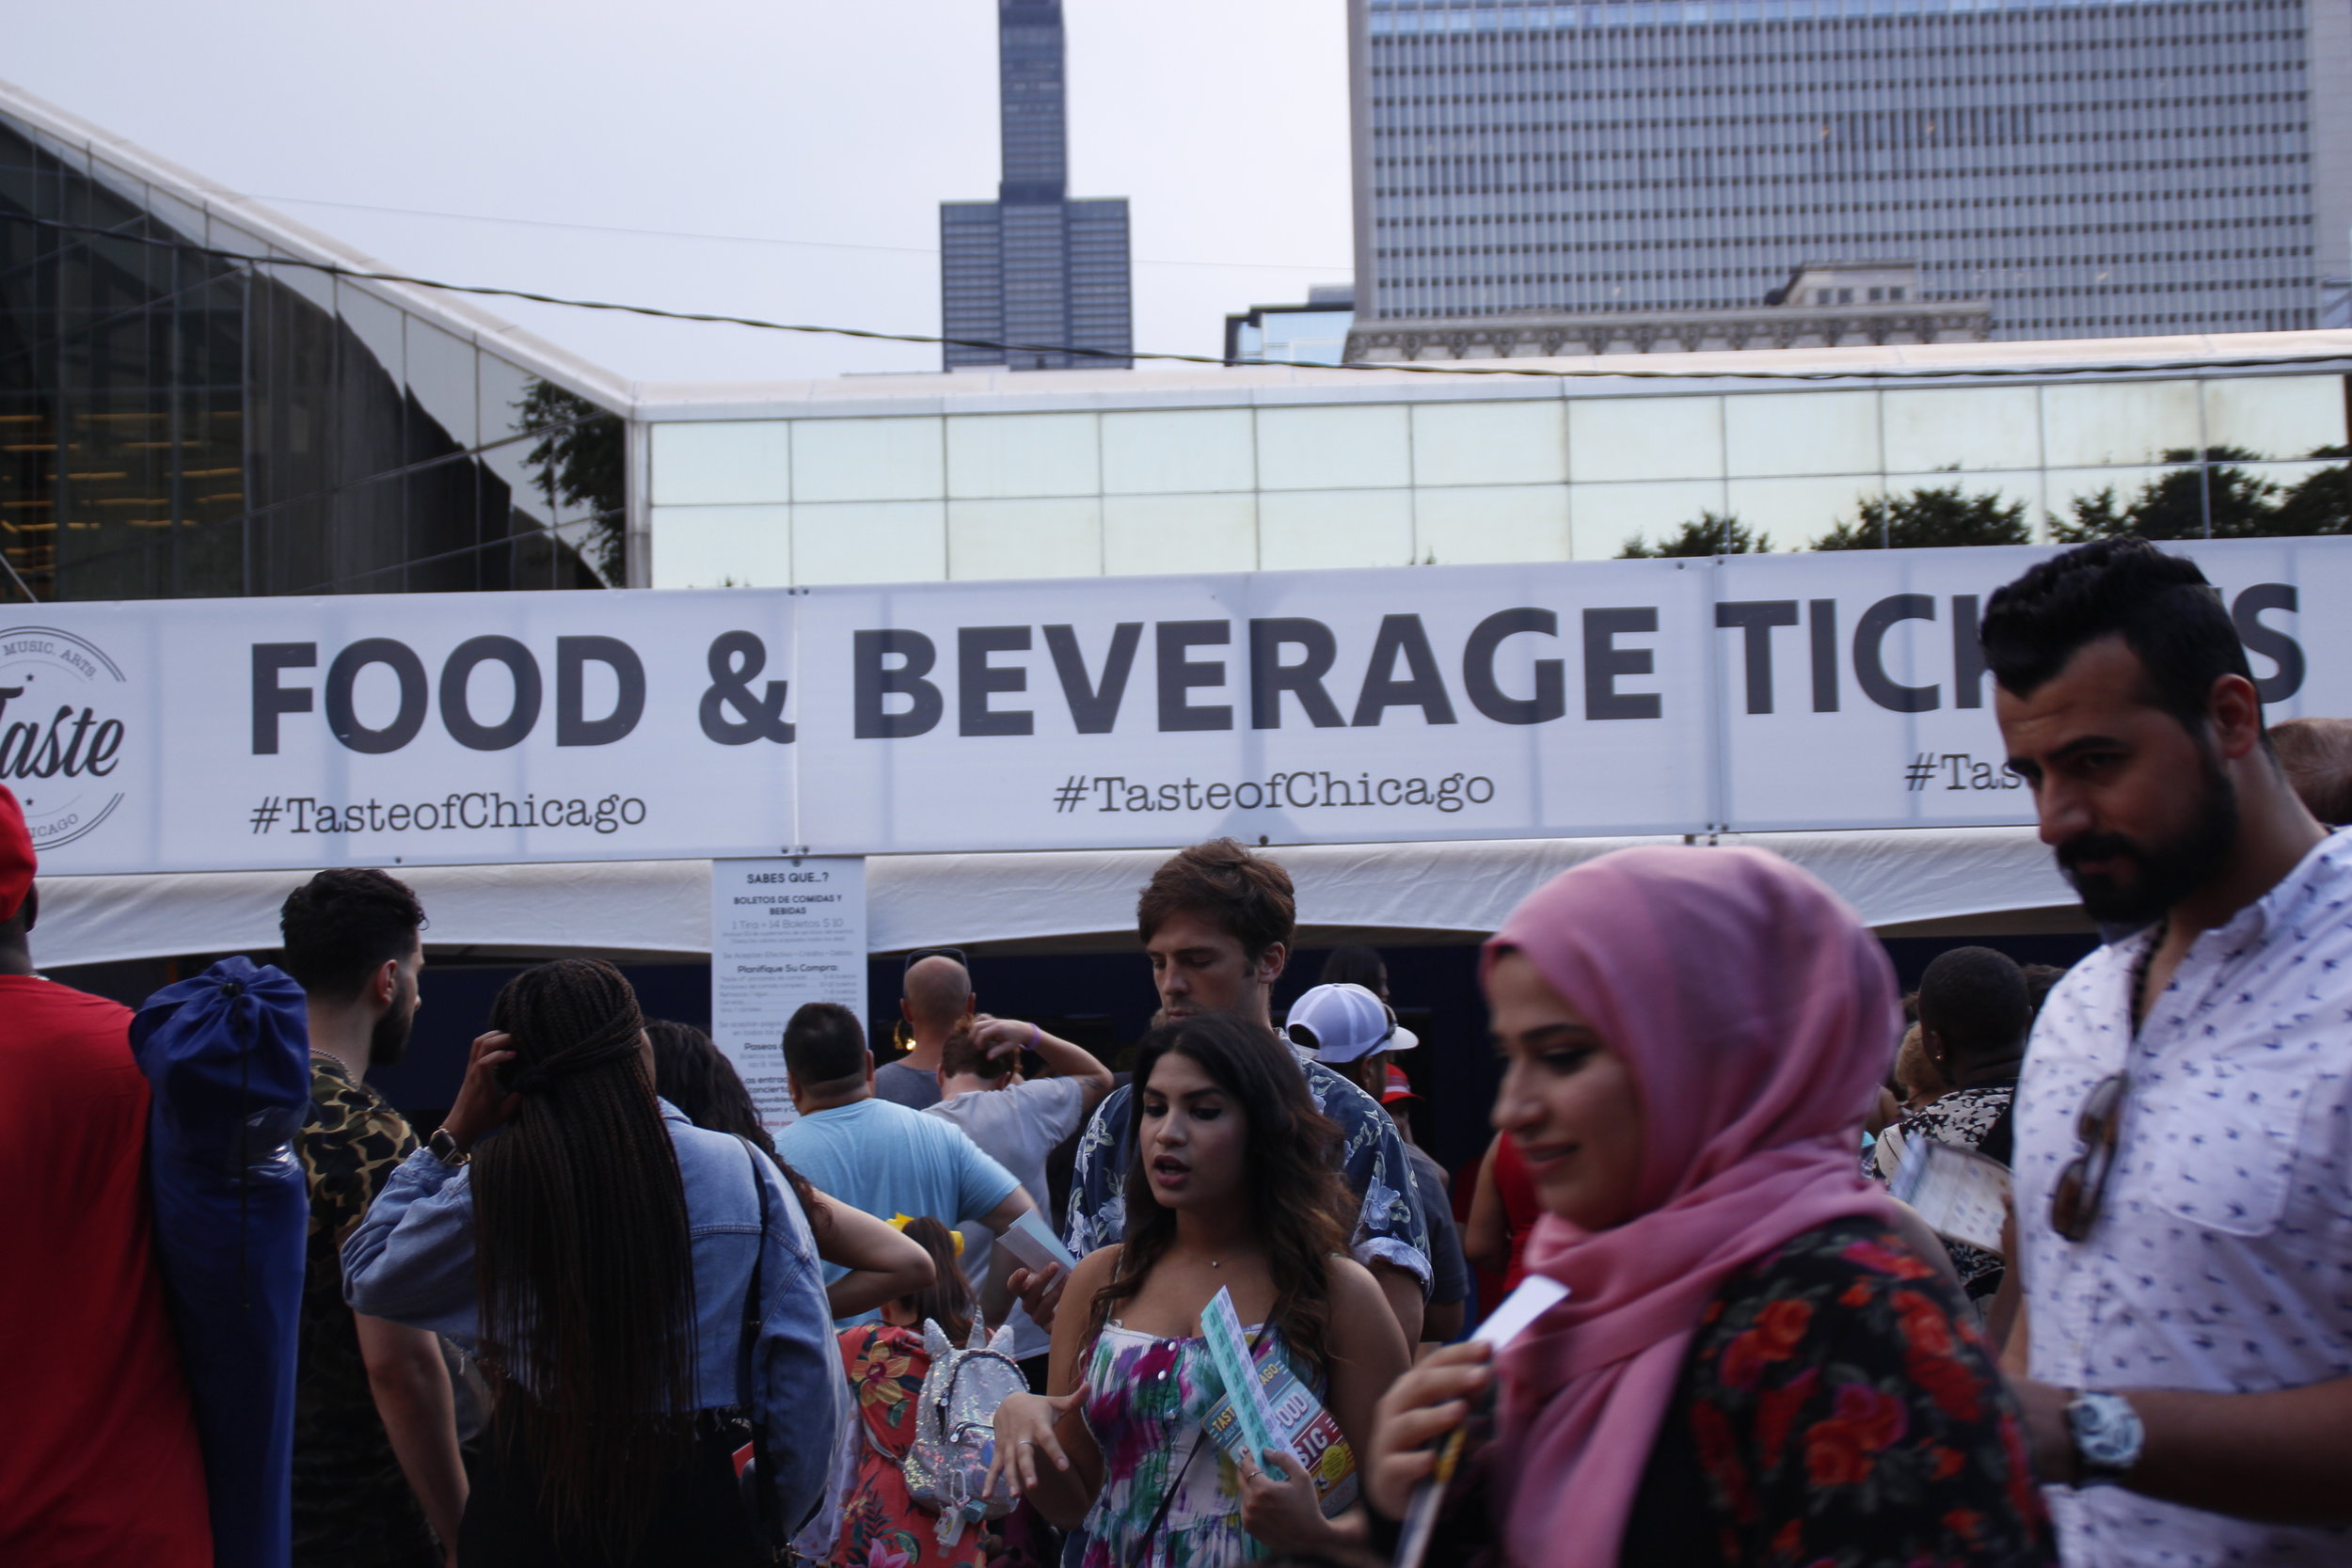 People pushed through crowds and stood in long lines to grab tickets for food at the 2019 Taste of Chicago. Tickets were $14 per strip, which included 10 tickets that could be used in exchange for sample size food.